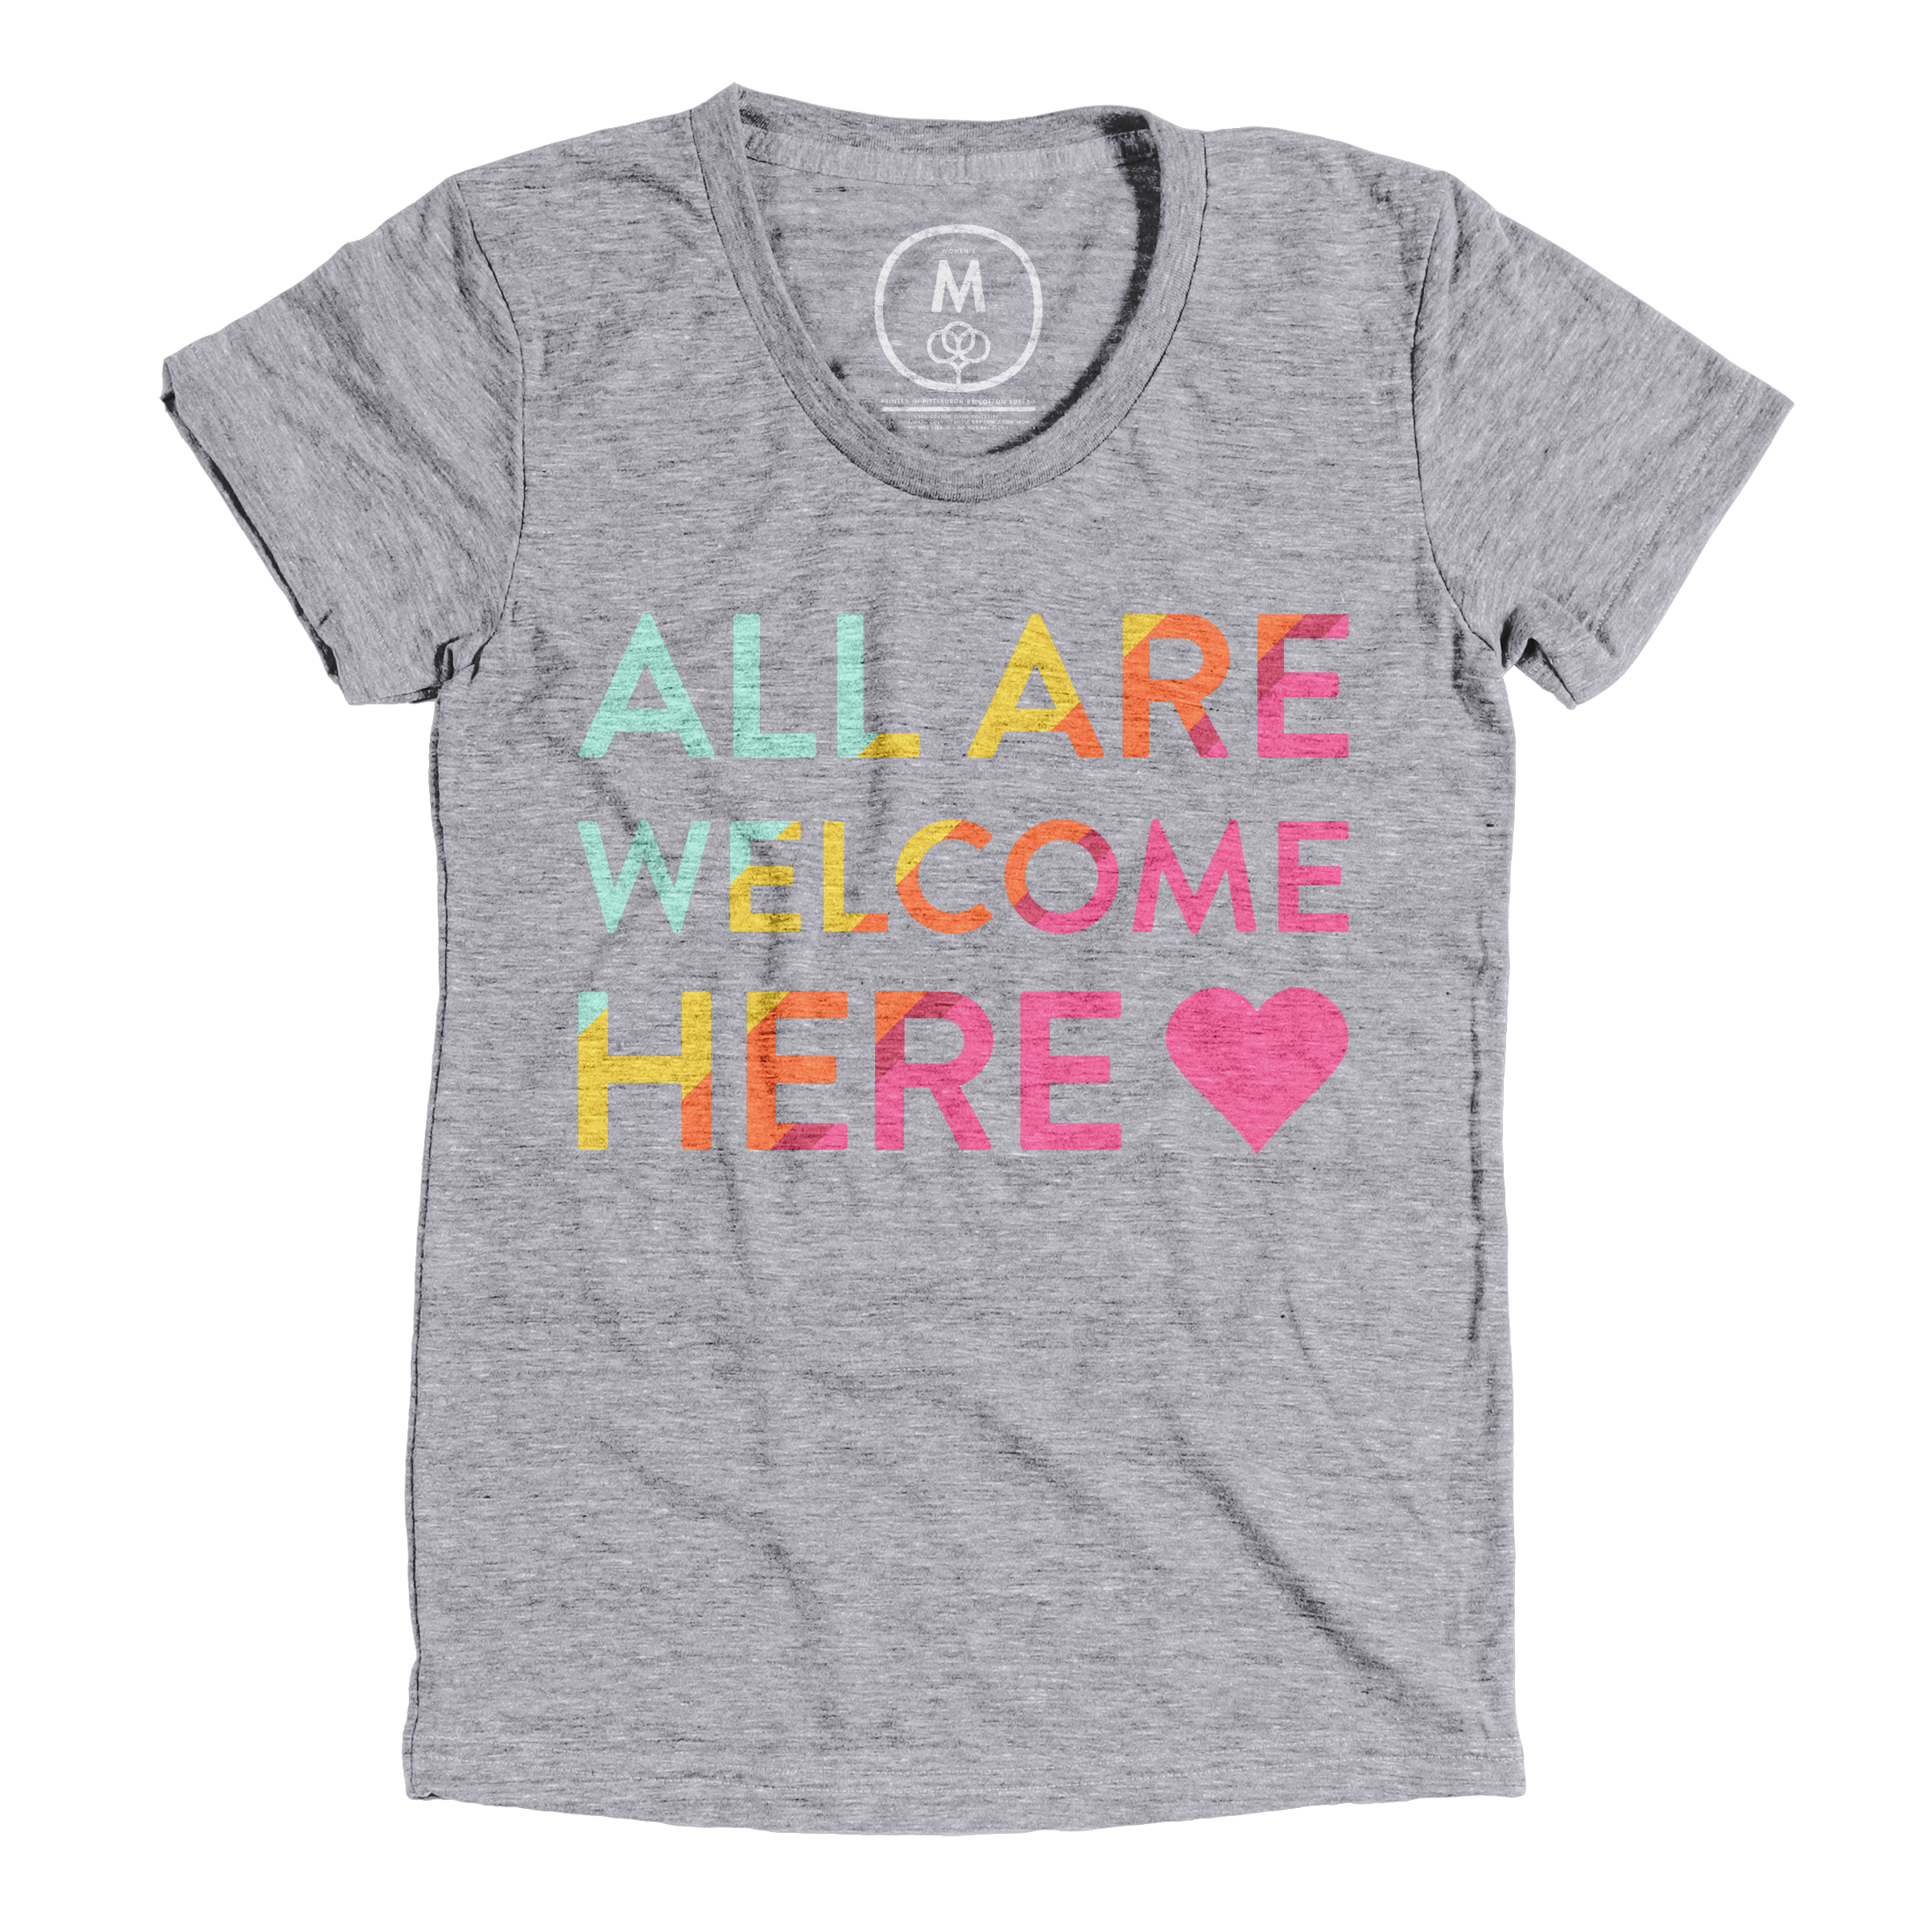 All Are Welcome Here Premium Heather (Women's)